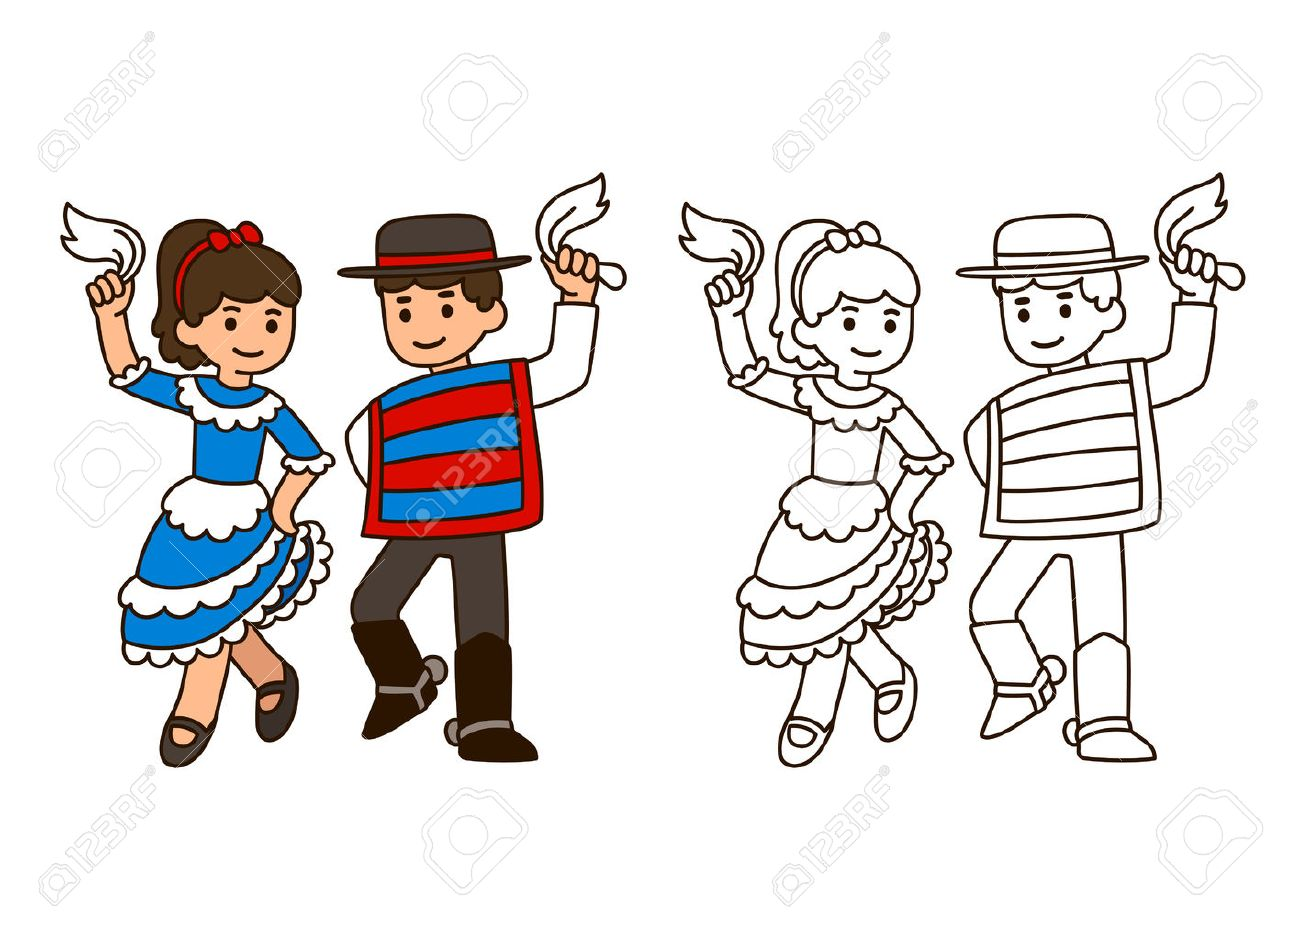 Cartoon Children Dancing Cueca Traditional Dance In Chile Boy And Girl Couple National